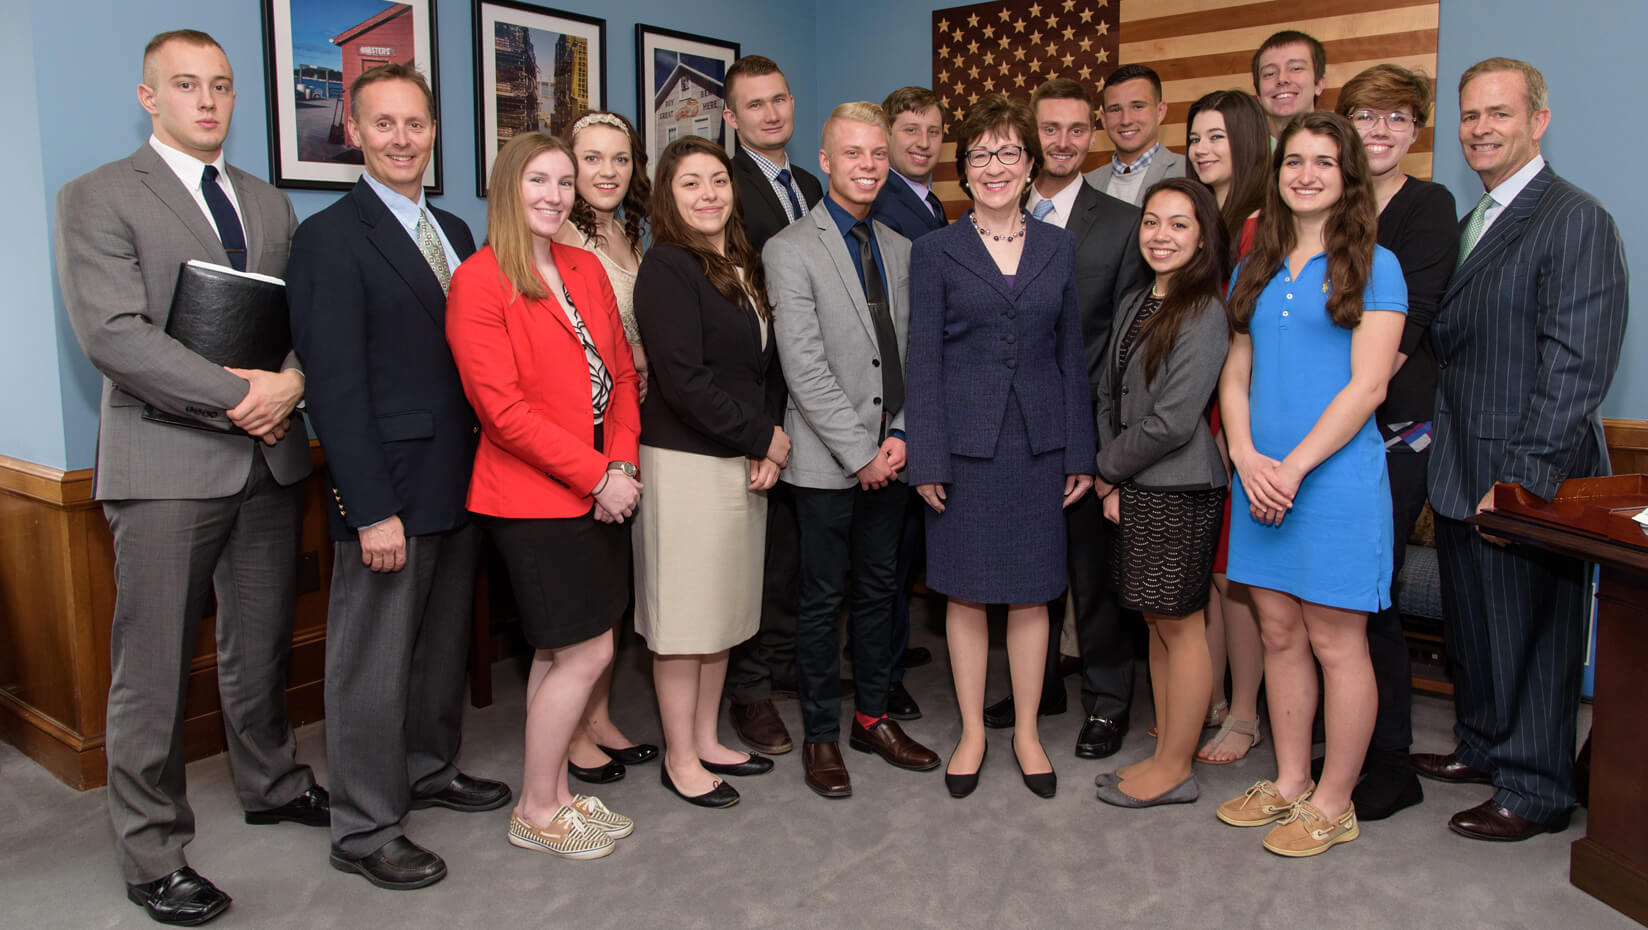 featured image for Sen. Collins welcomes UMaine students to nation's capital